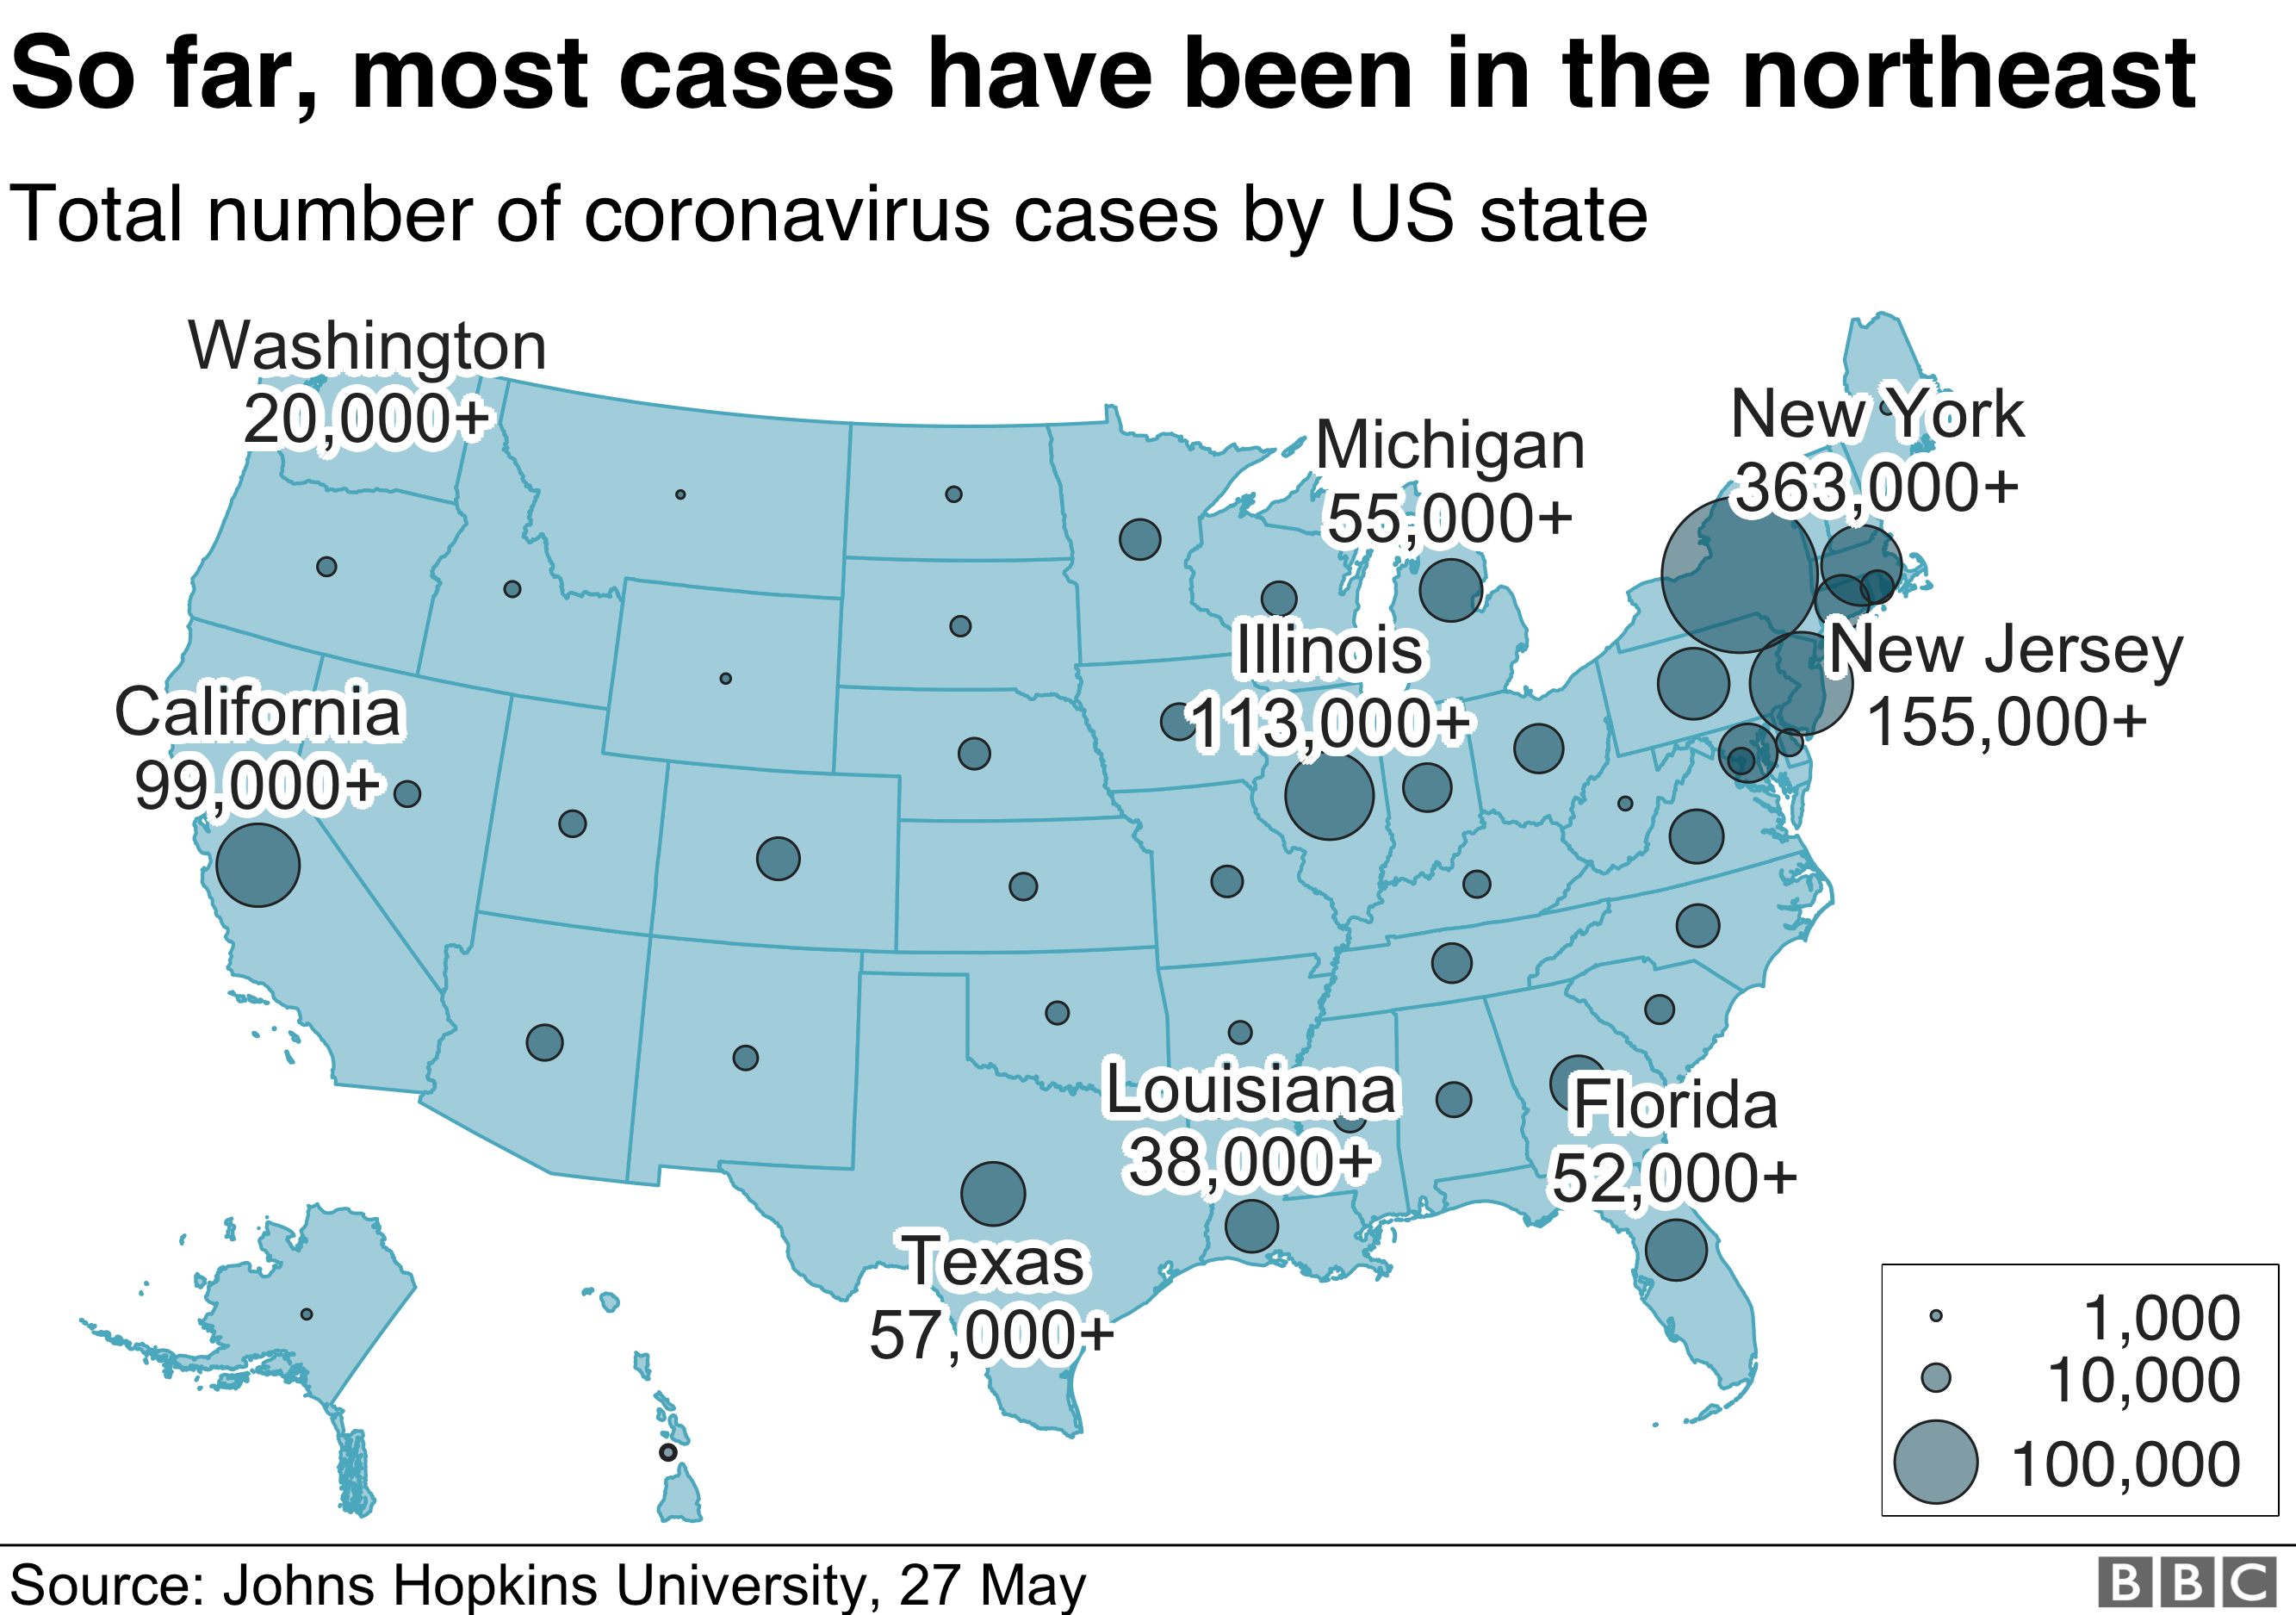 Map showing the total number of coronavirus cases by US state. At the moment, the overwhelming majority have been in the northeast of the country